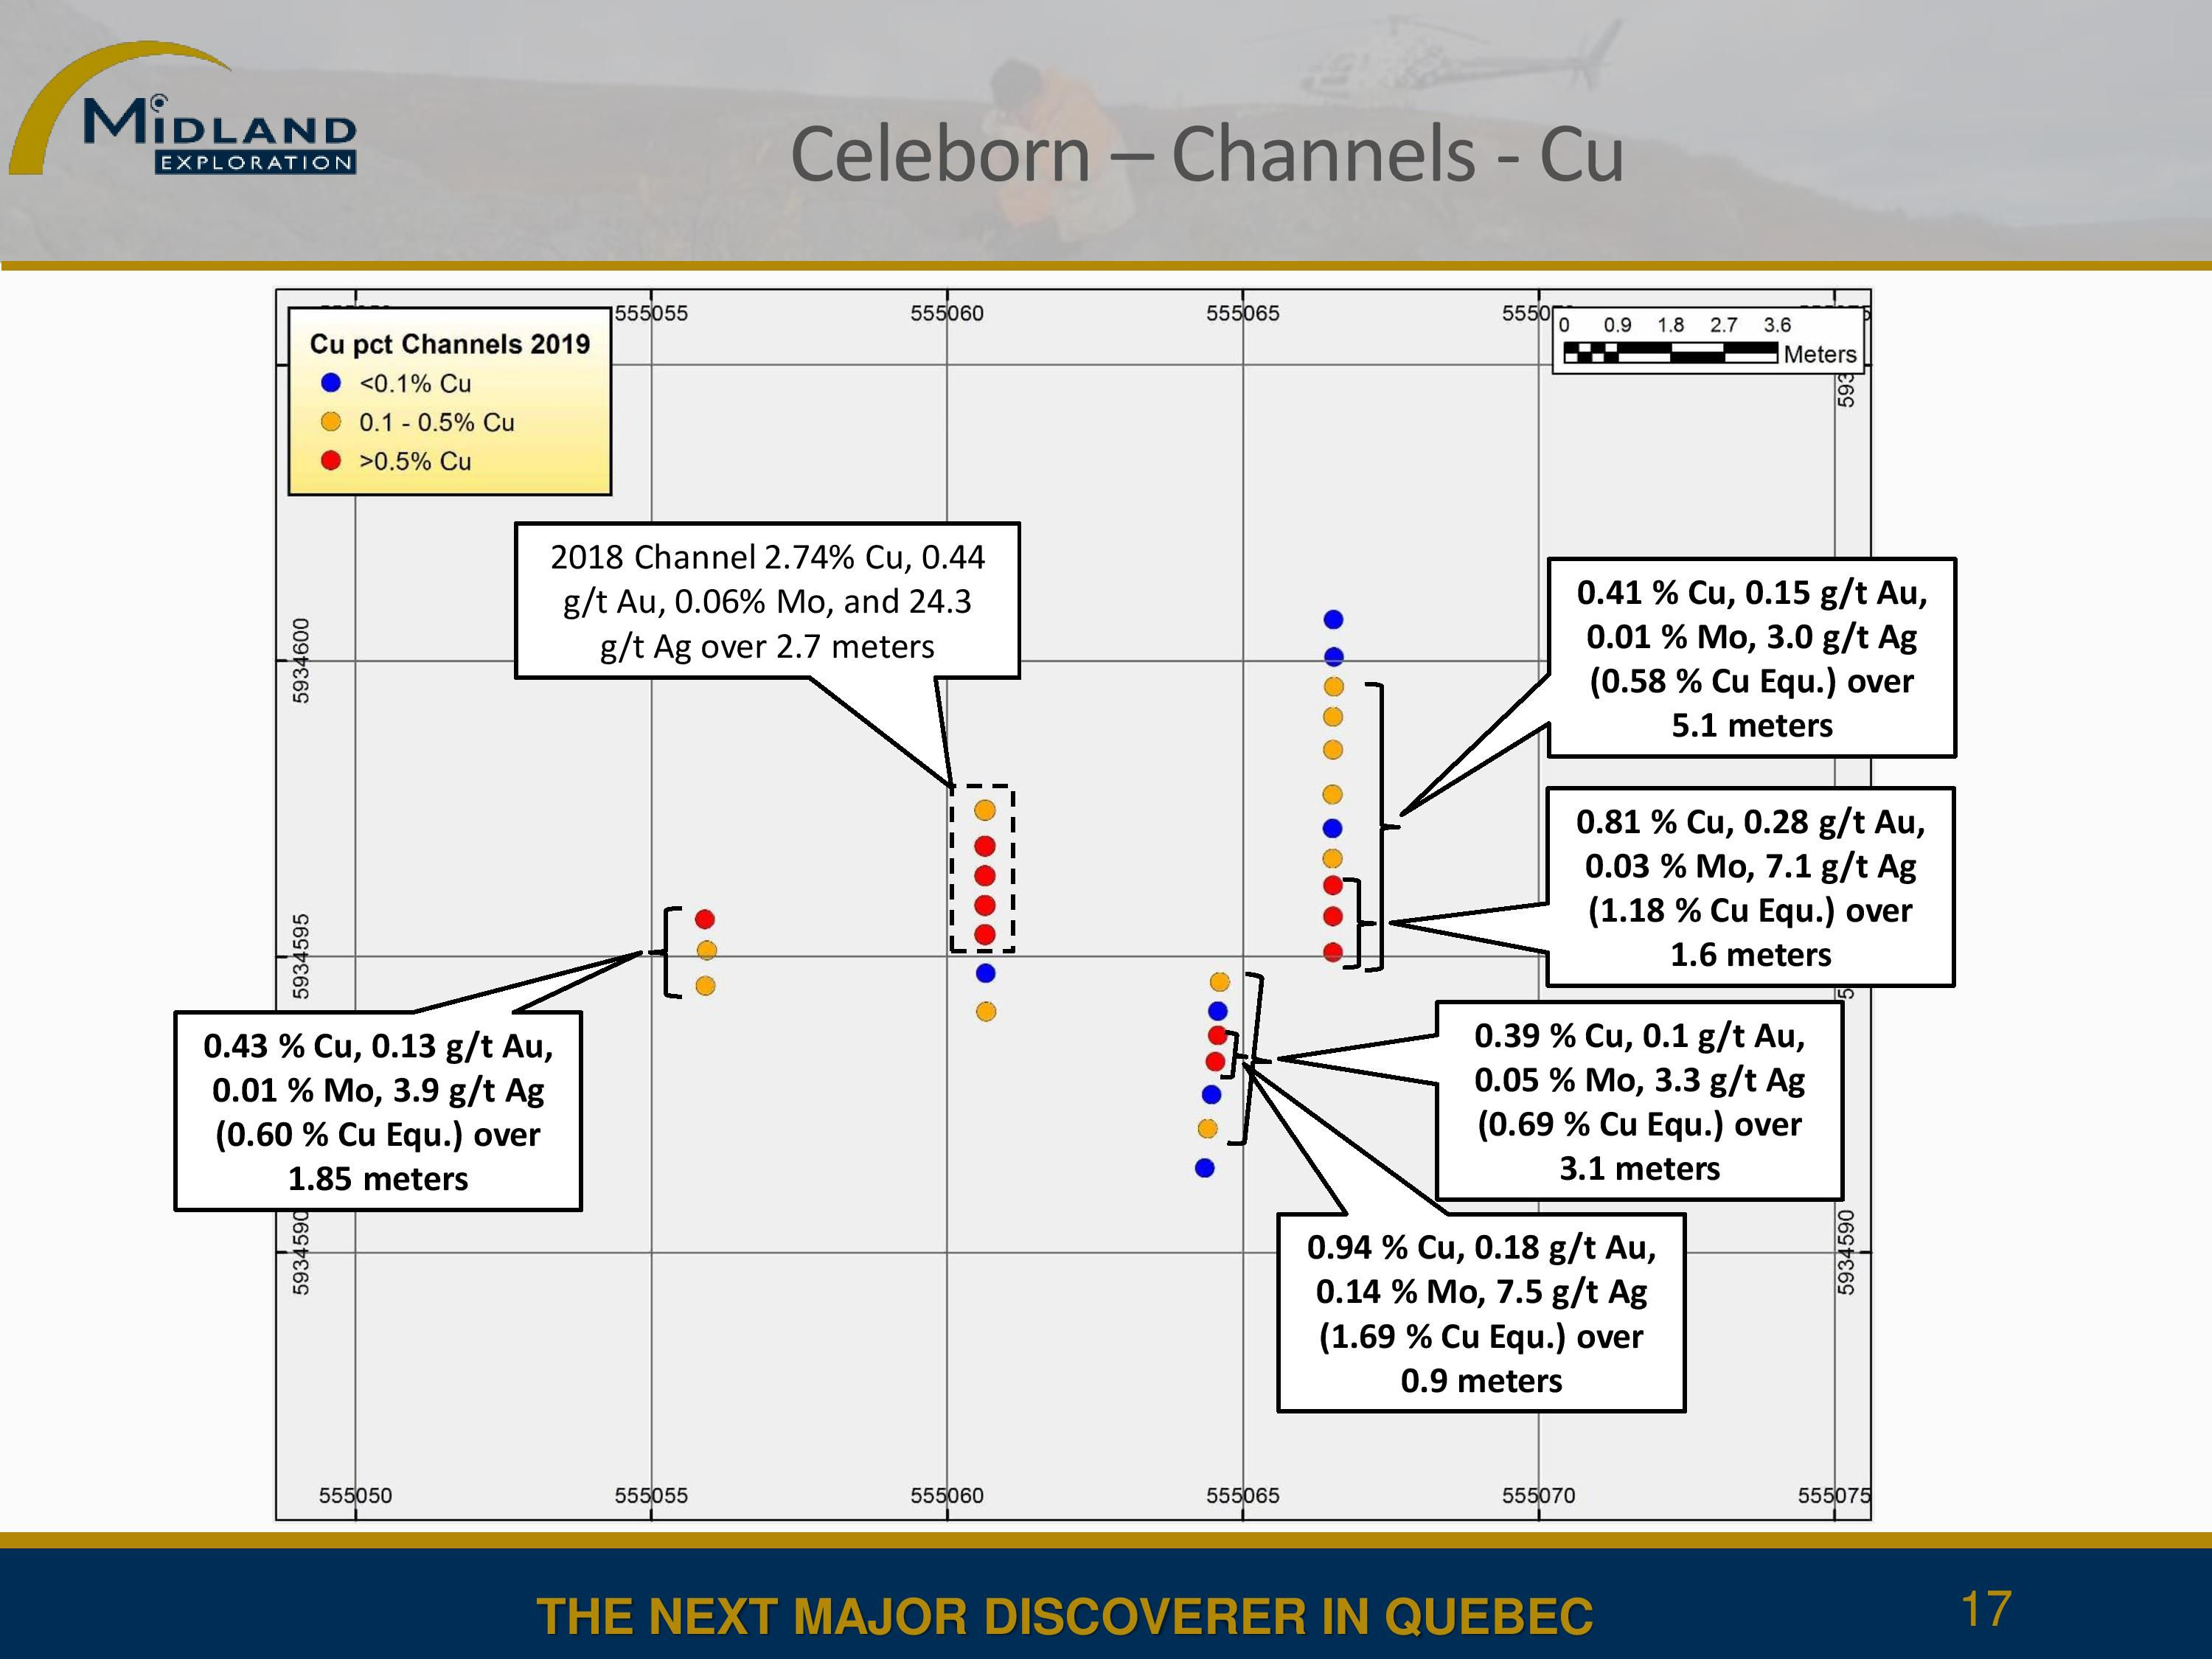 New channels at Celeborn showing